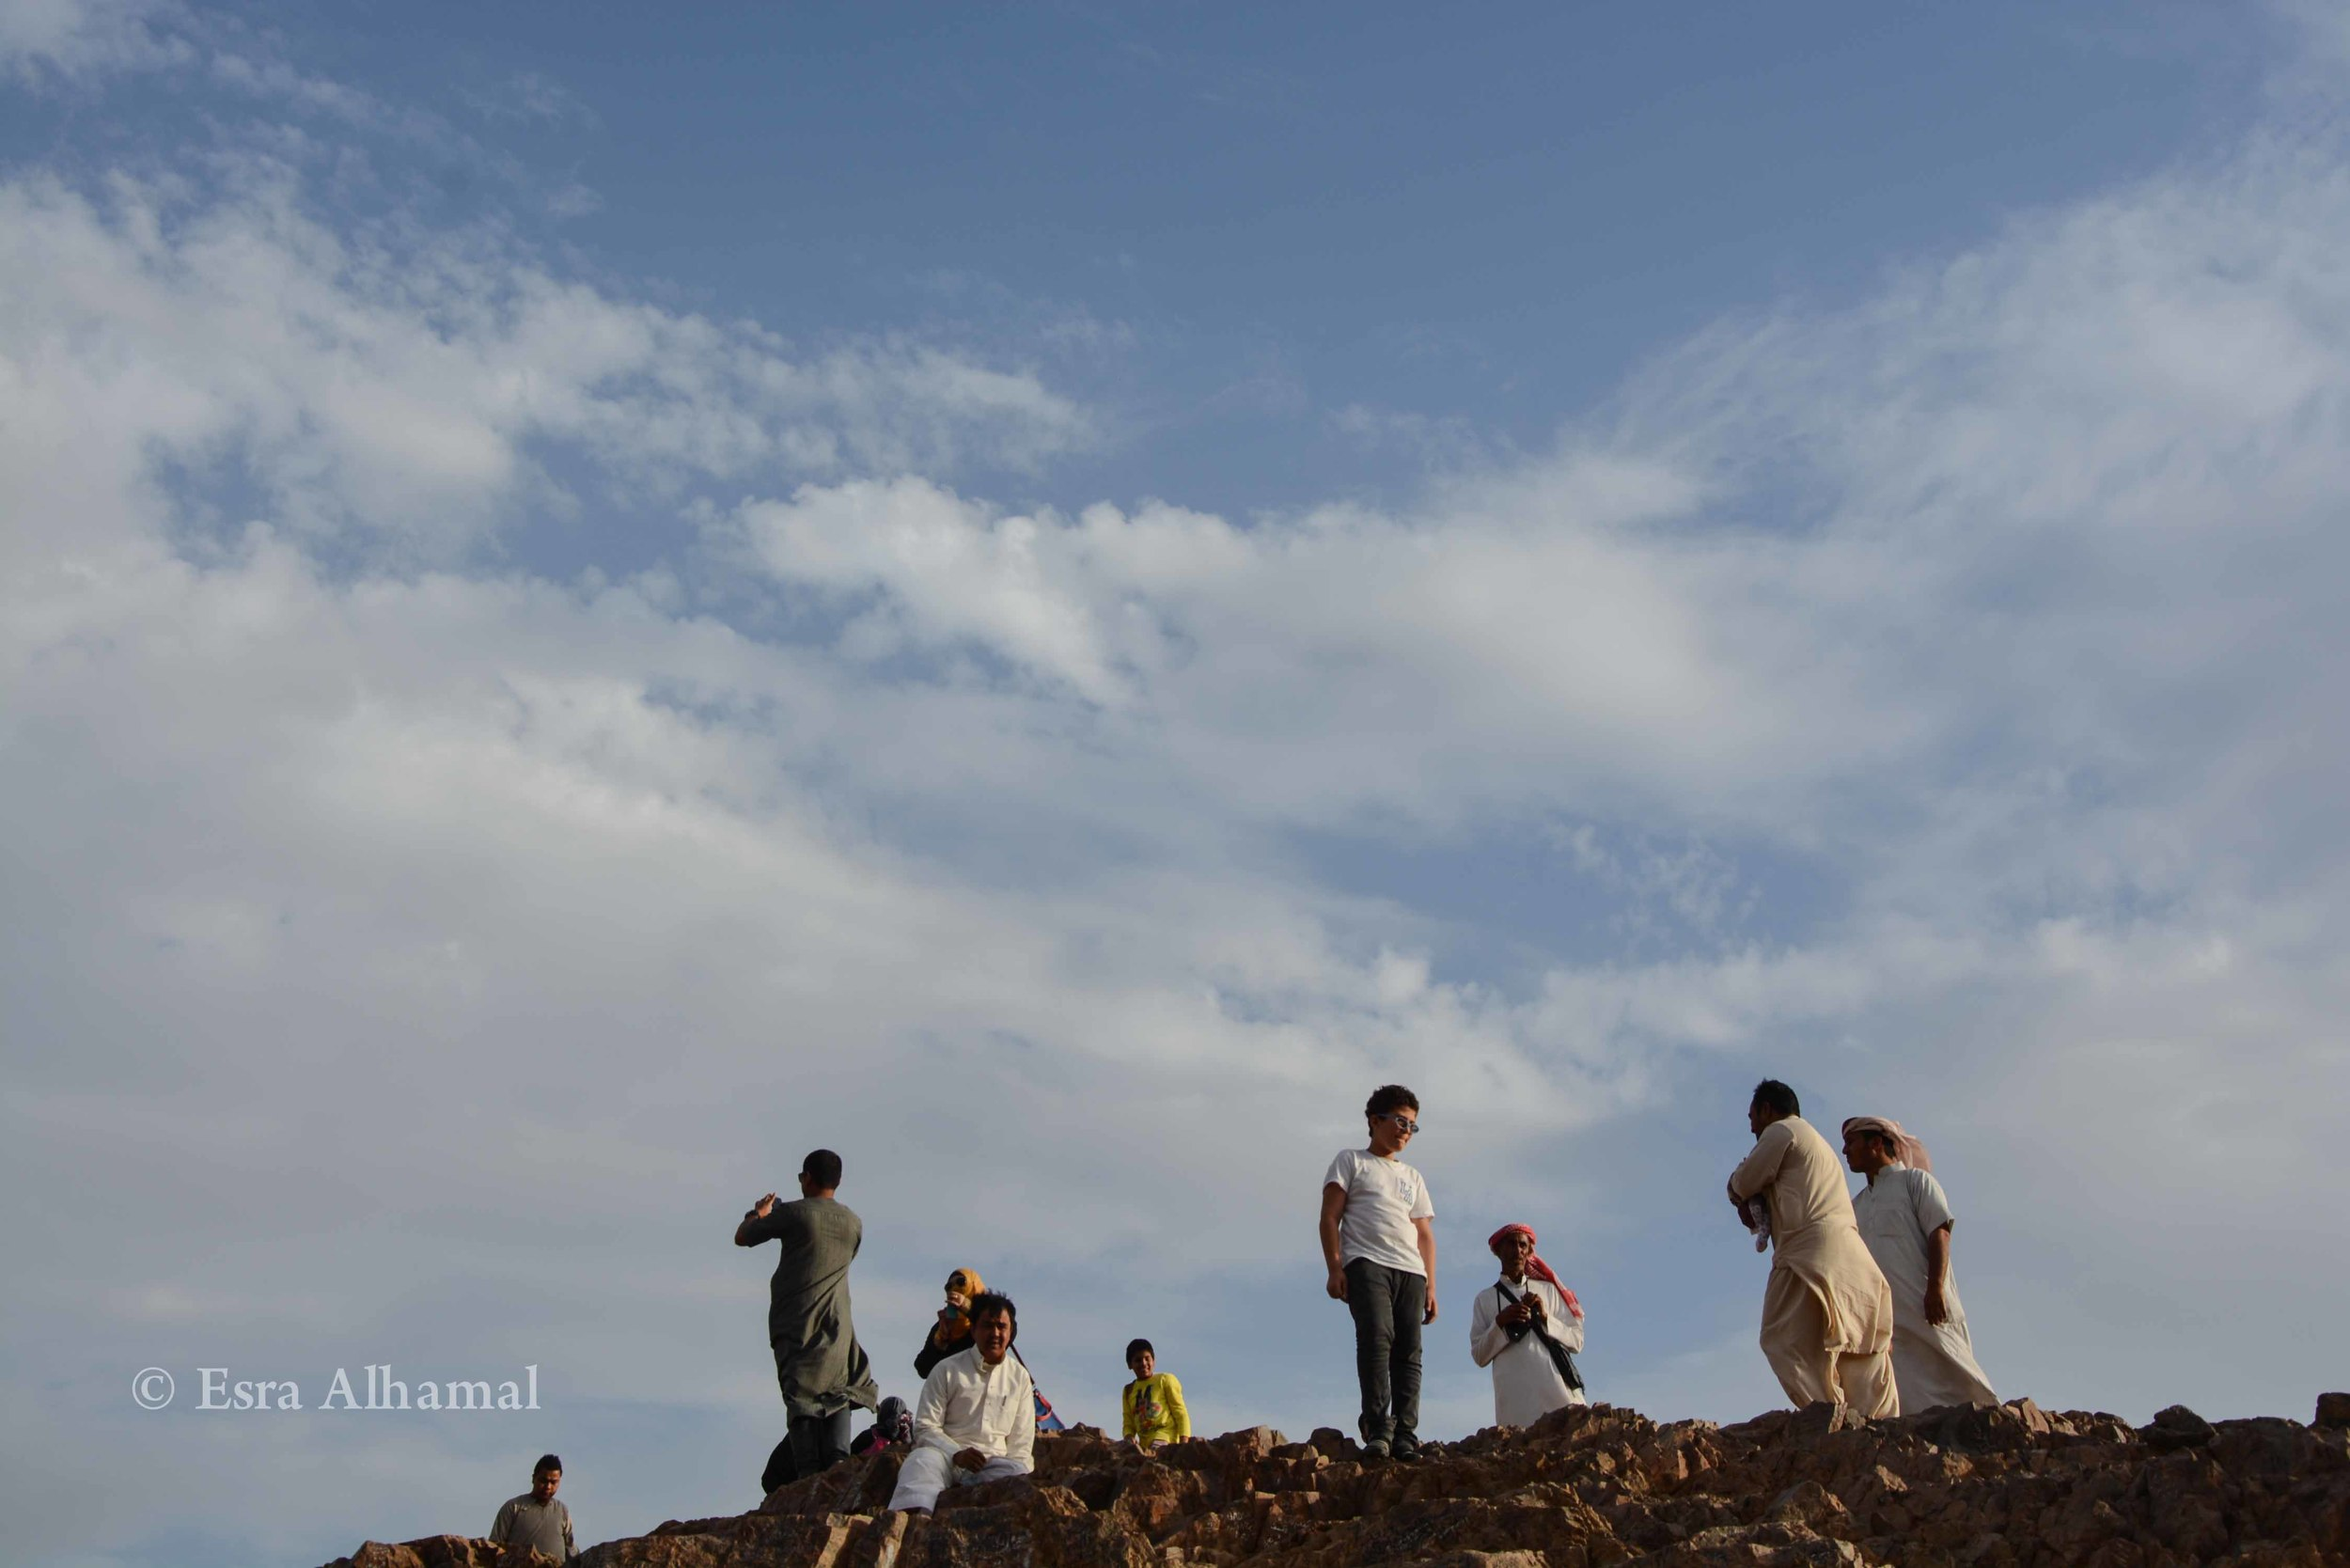 Children on top of the mountain in Medina